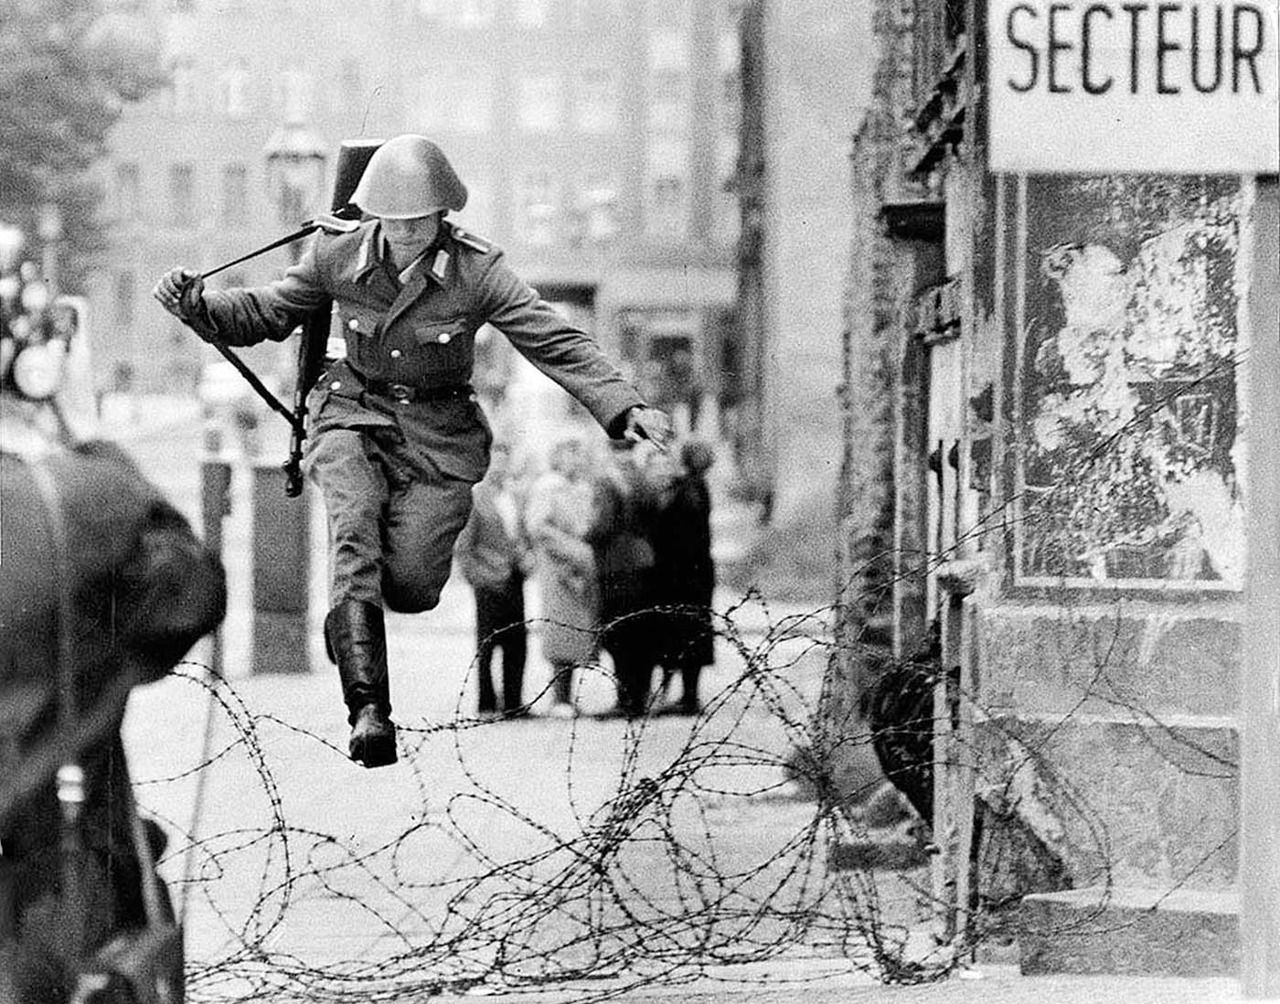 19 year old East German soldier Conrad Schumann jumping the barbed ...